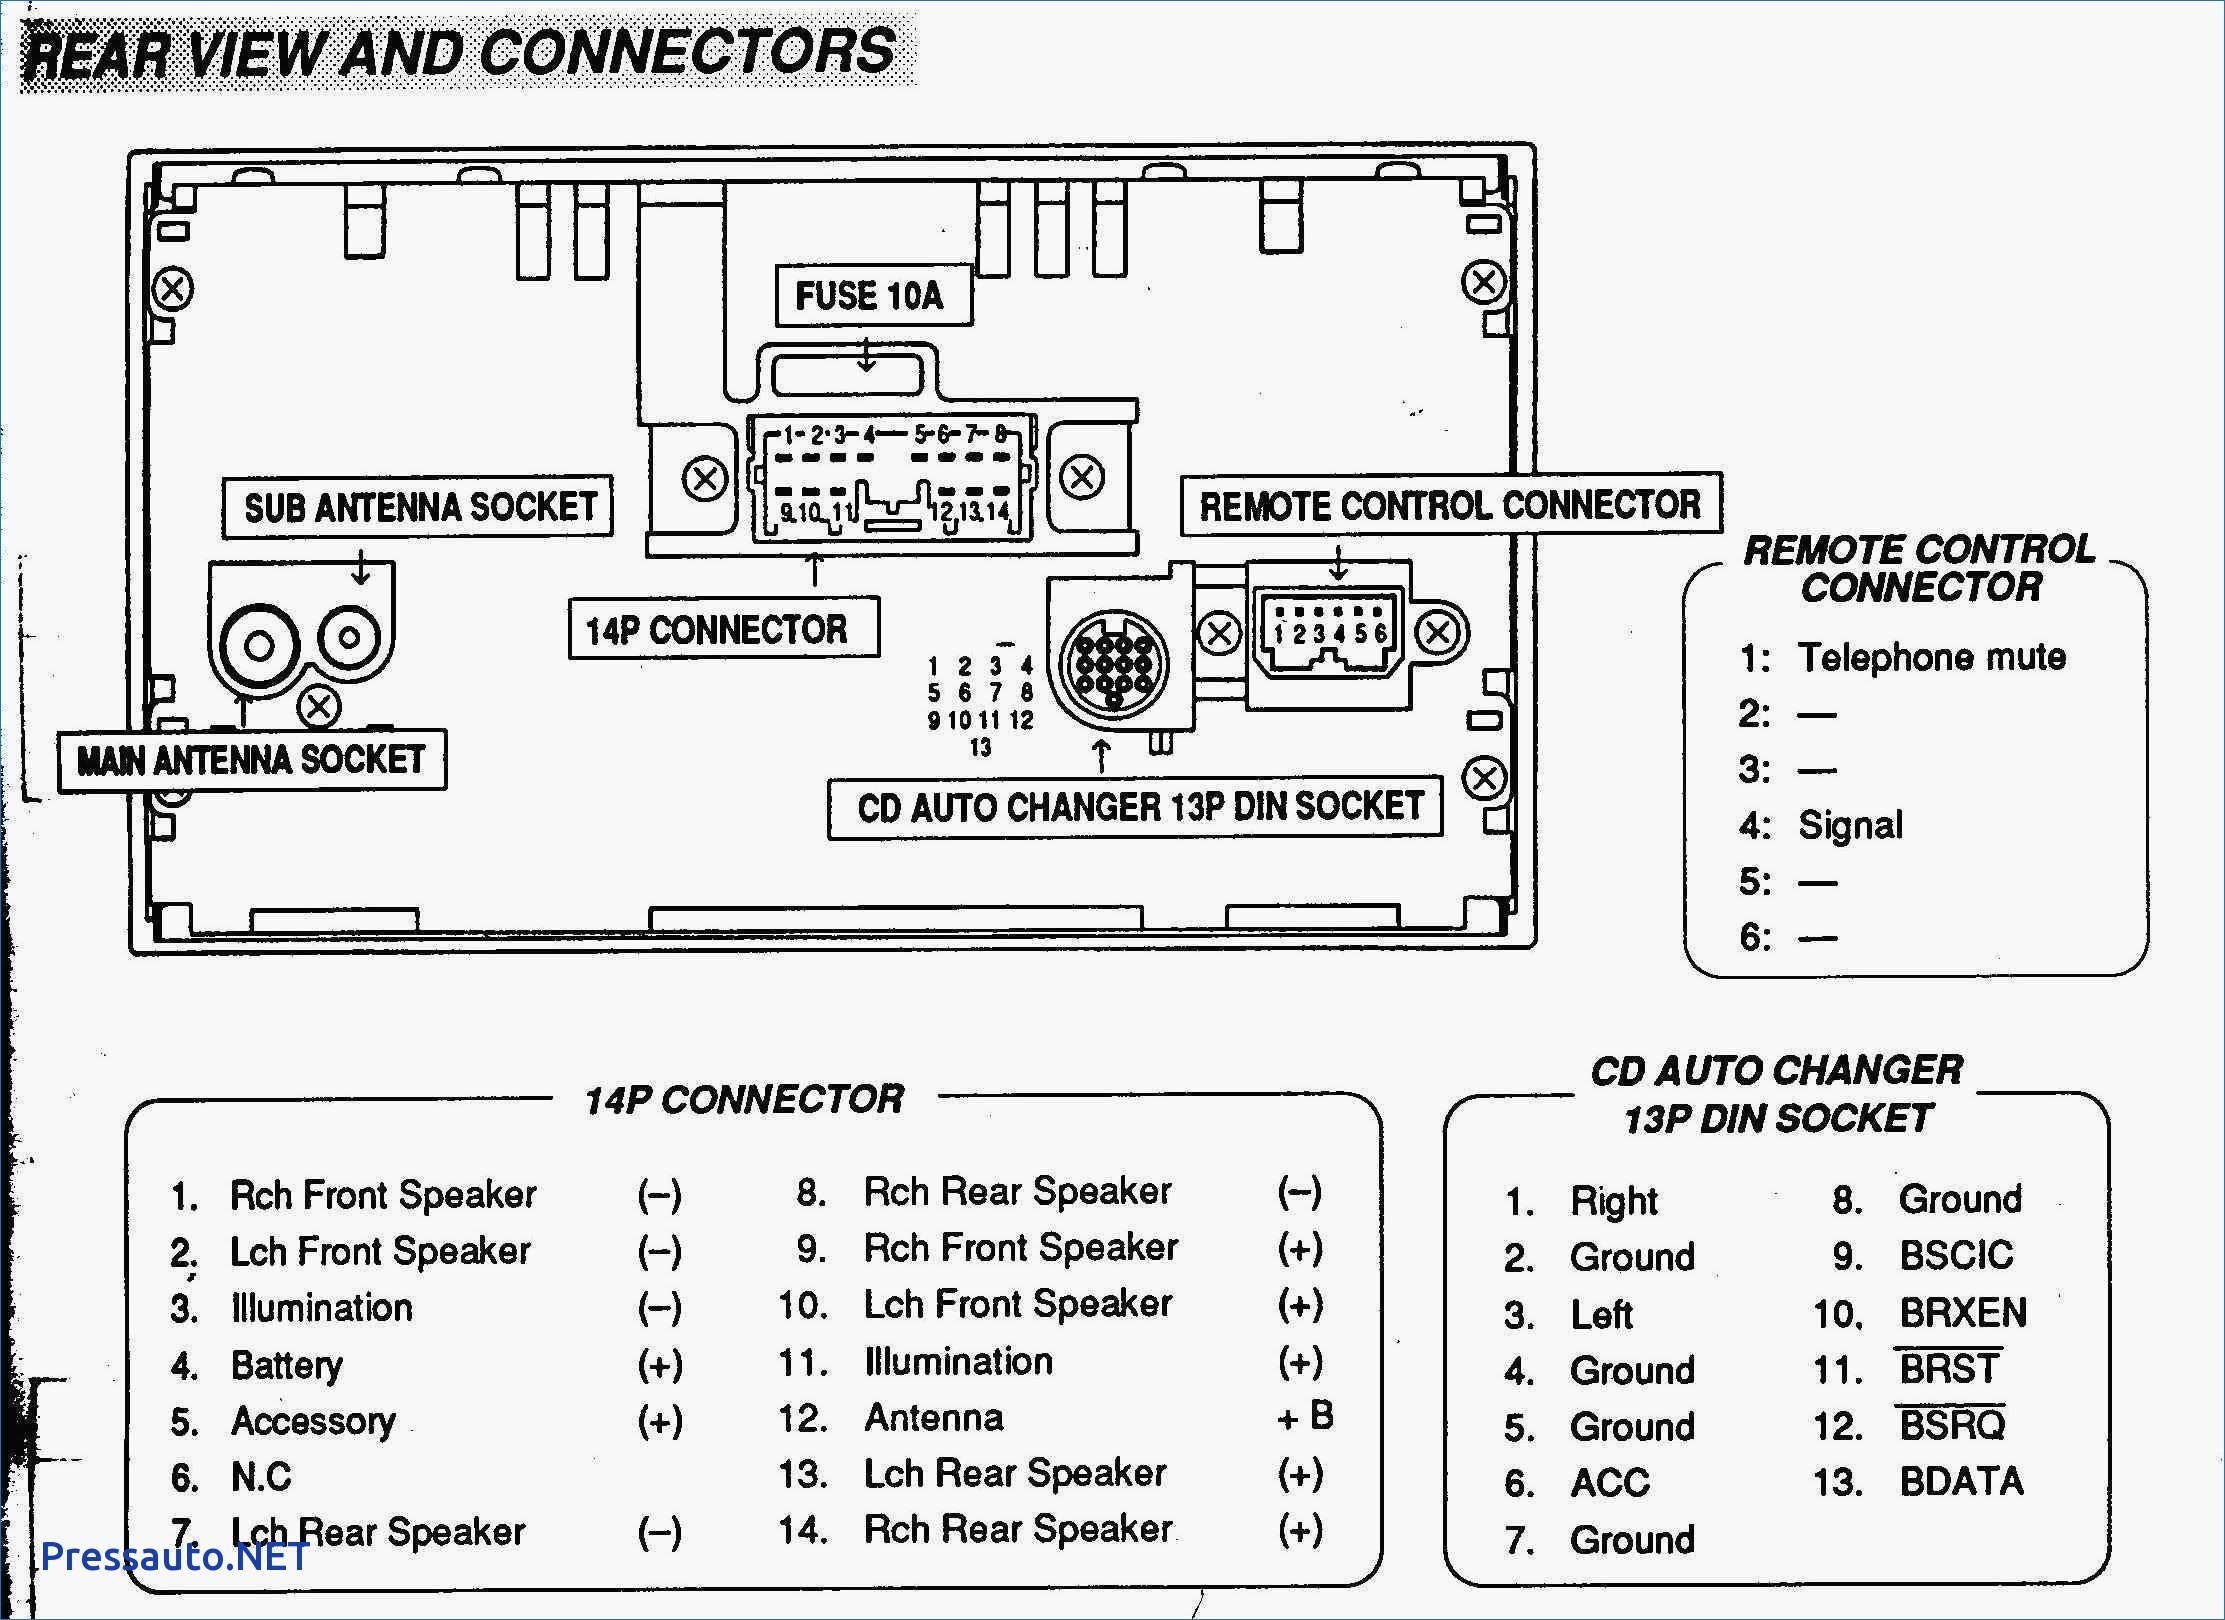 2002 jetta tdi wiring diagram white rodgers thermostat 1f78 vw engine my